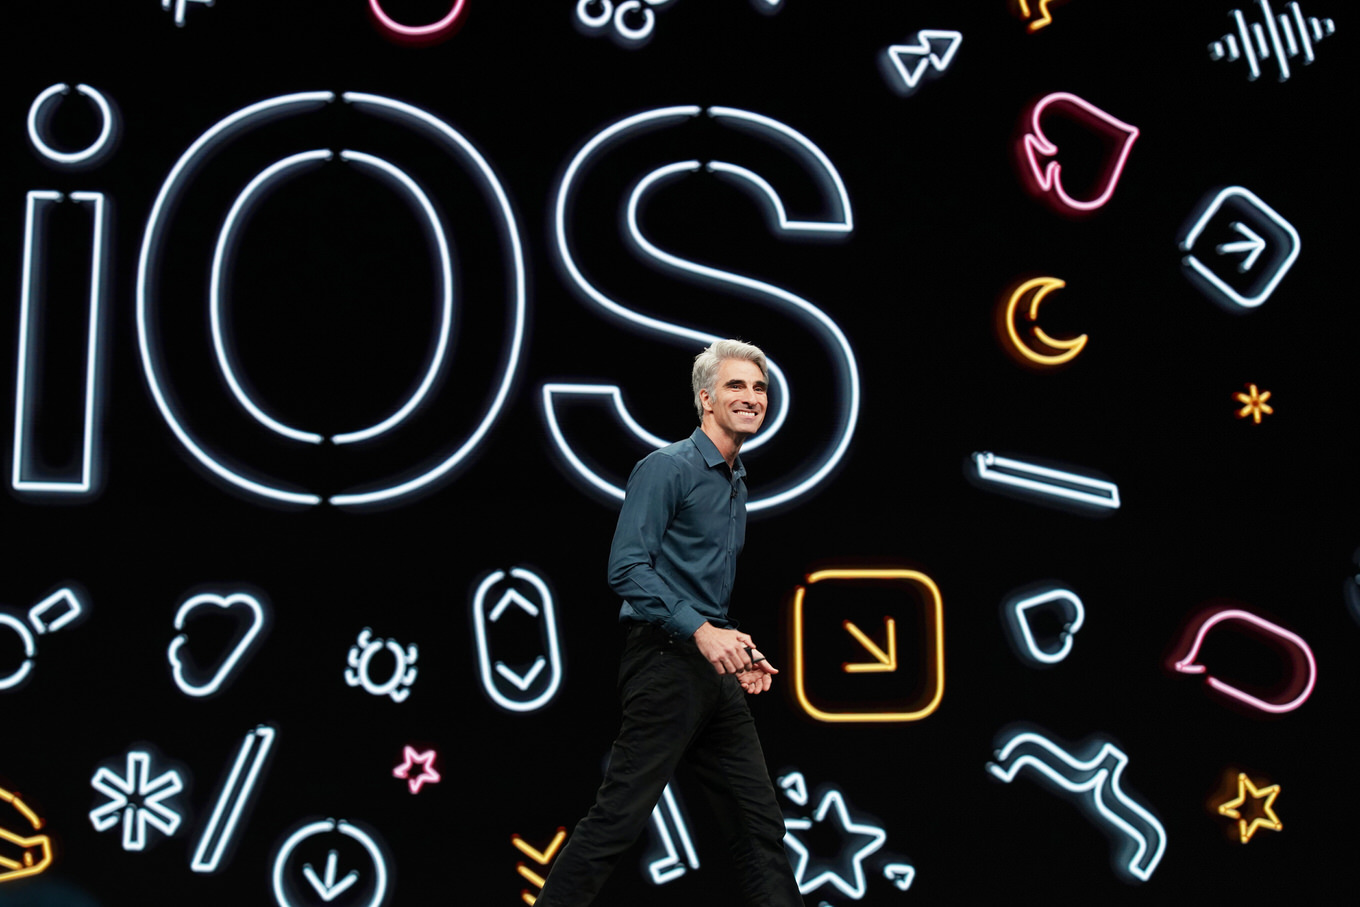 Apple-highlights-from-wwdc19-Craig-Federighi-unveils-iOS13-06032019